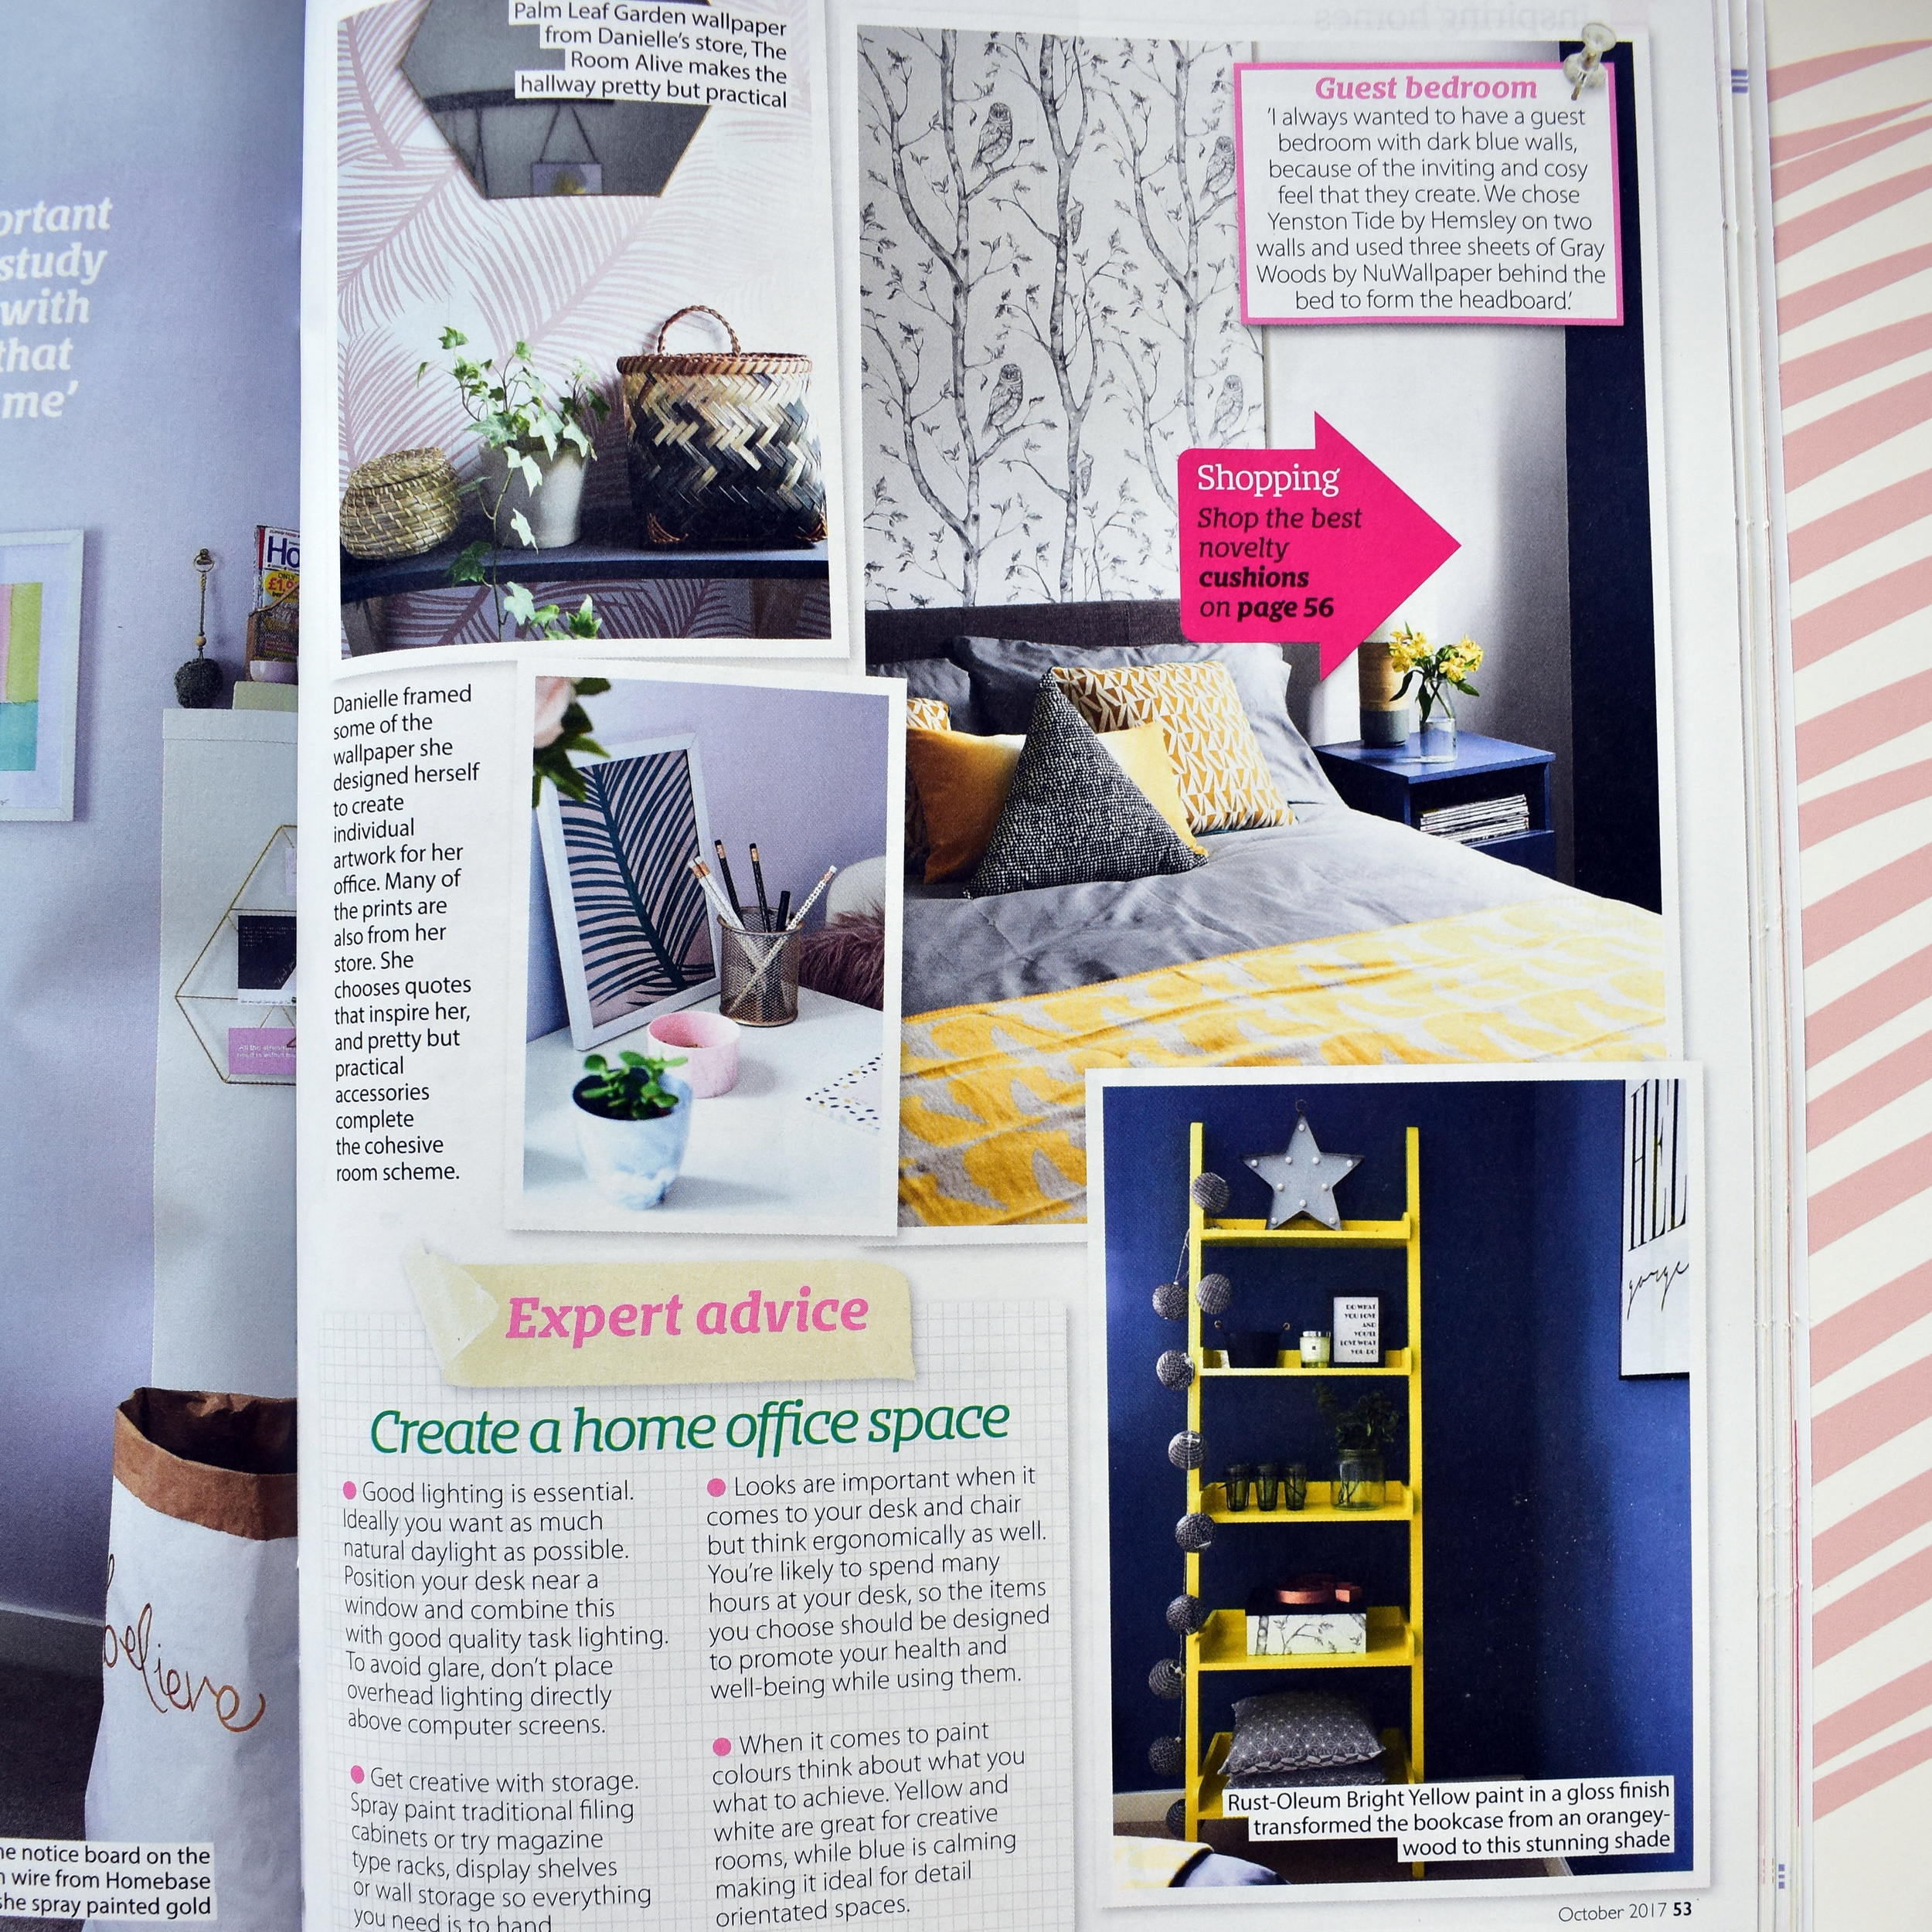 The guest bedroom as it was featured on Homestyle Magazine